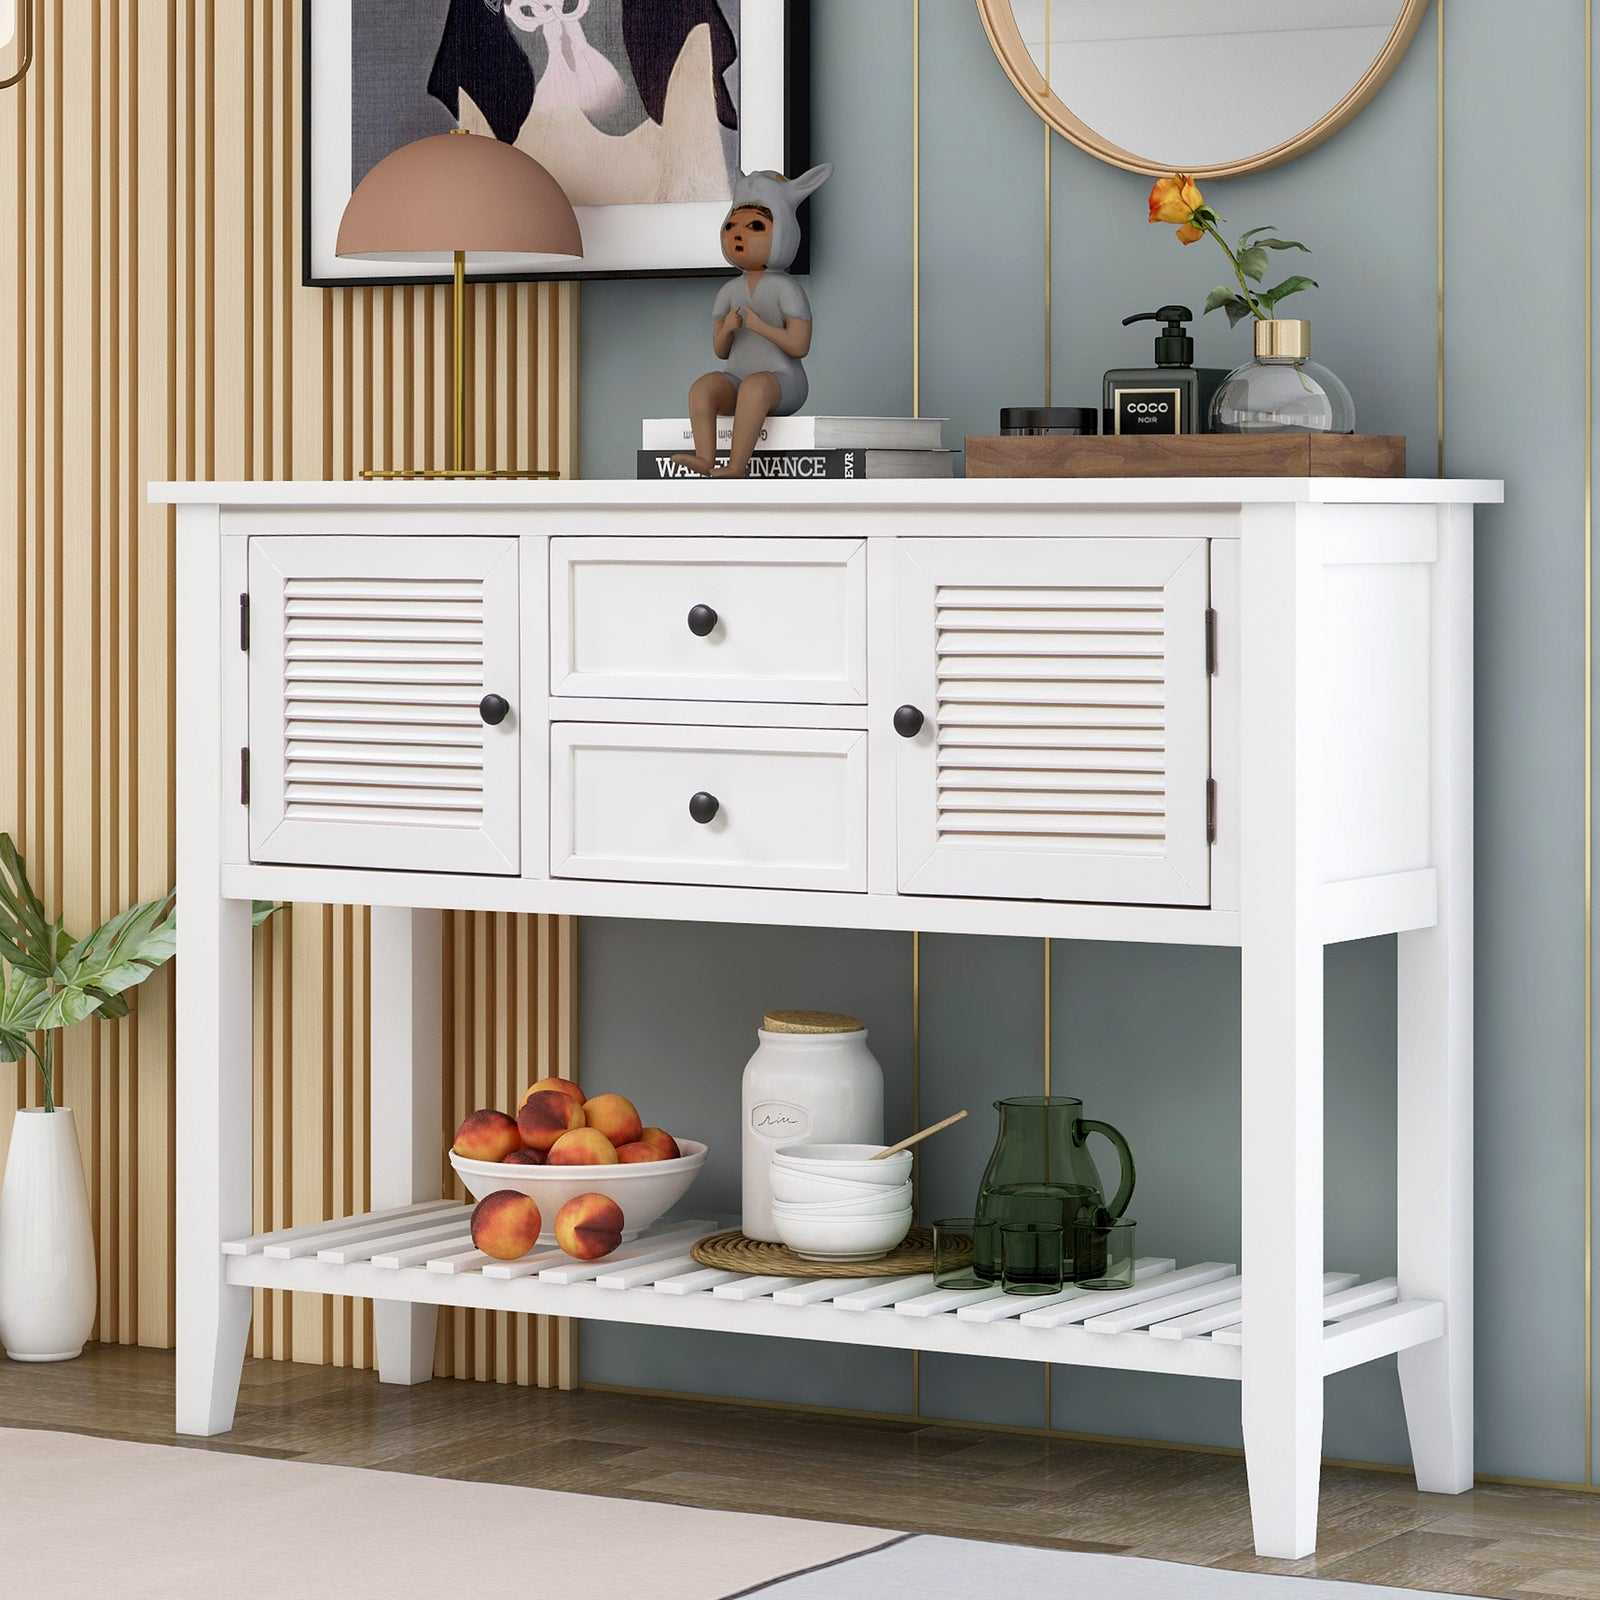 Lavender Console Table Sideboard with Shutter Doors Two Storage Drawers and Bottom Shelf BH196438